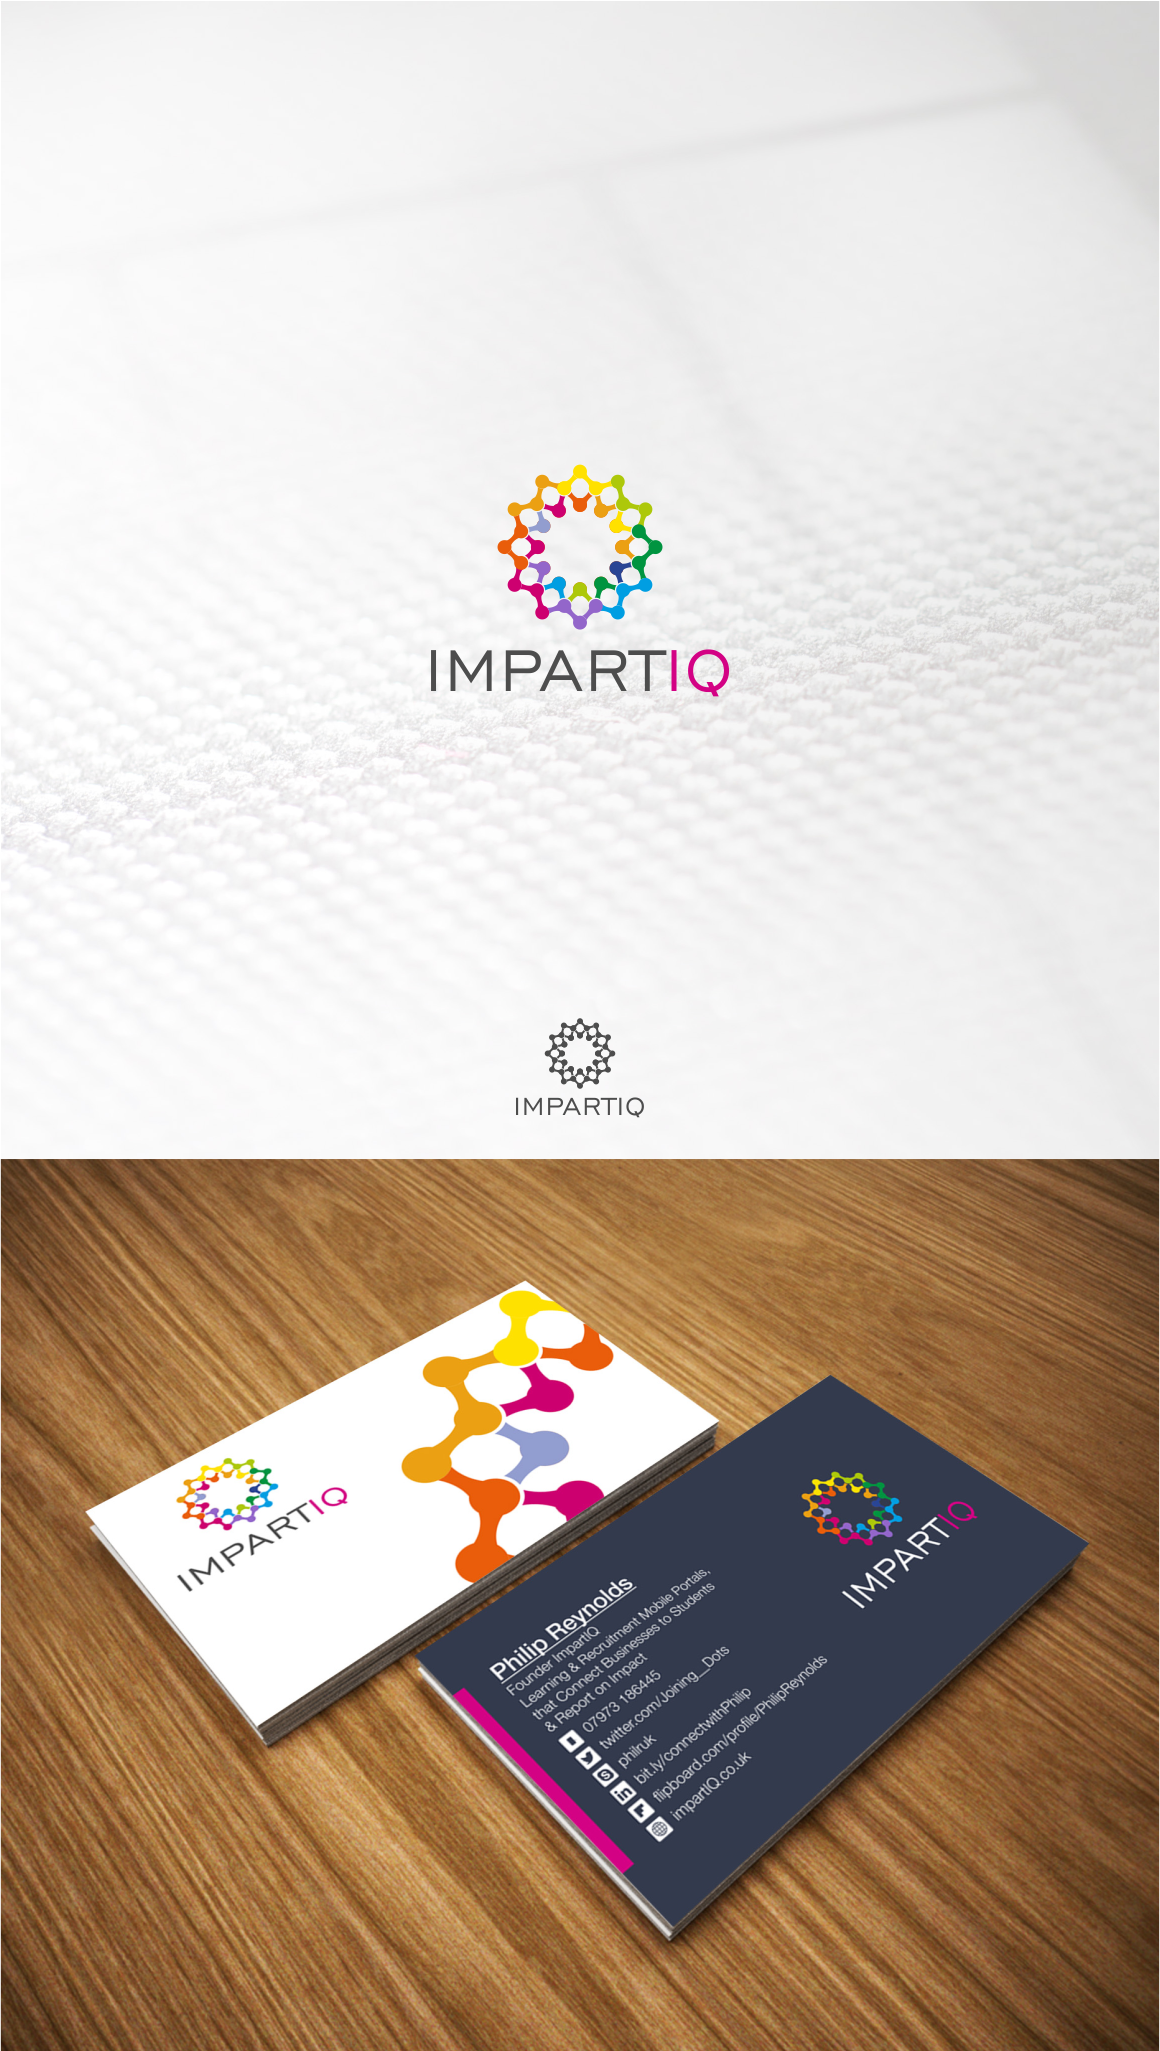 Logo/Brand for exciting start up that wants to join the dots between school/work